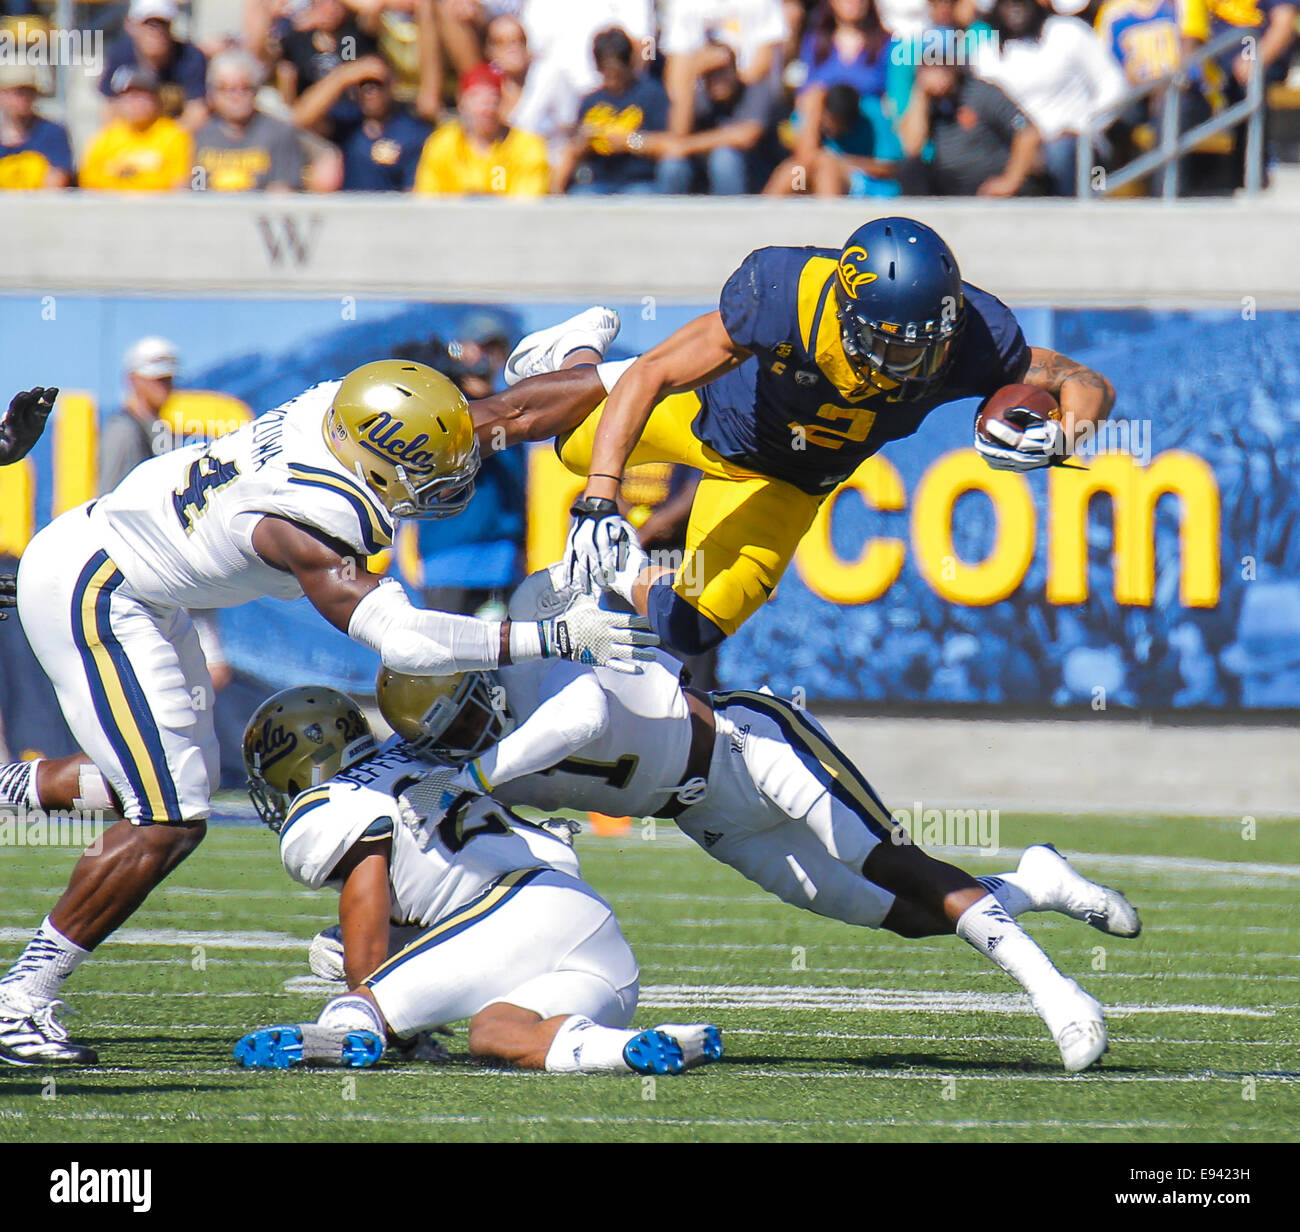 Berkeley USA CA. 18th Oct, 2014. California RB # 2 Daniel Lasco leep overs UCLA players for a first down during NCAA Football game between UCLA Bruins and California Golden Bears 34-36 lost at Memorial Stadium Berkeley Calif. Credit:  csm/Alamy Live News Stock Photo